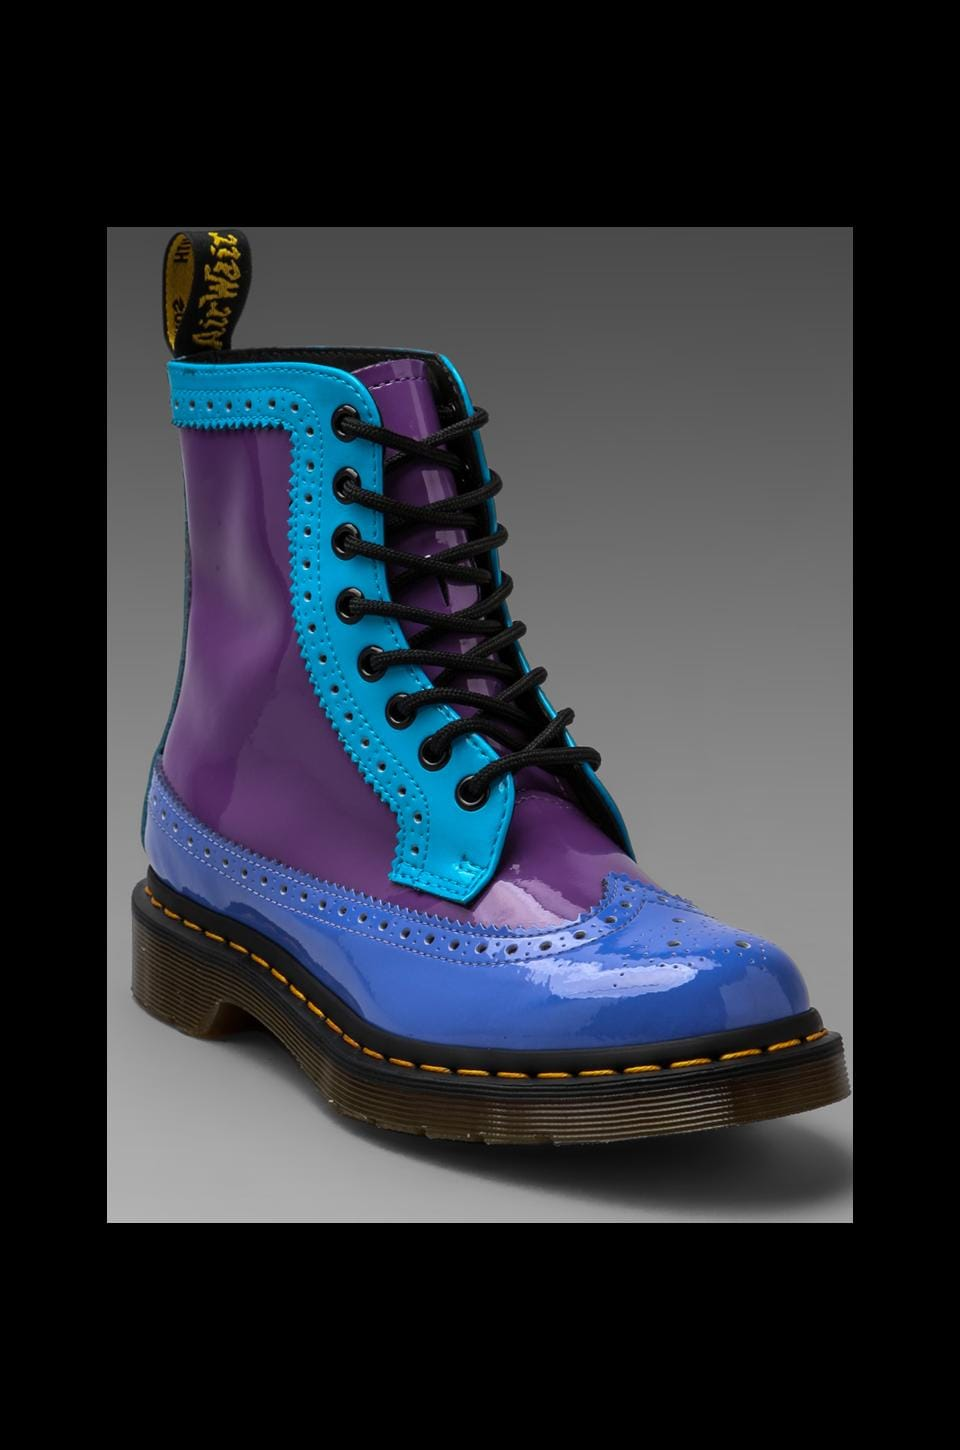 Dr. Martens Harrie Brouge Boot in Purple/Blue Multi